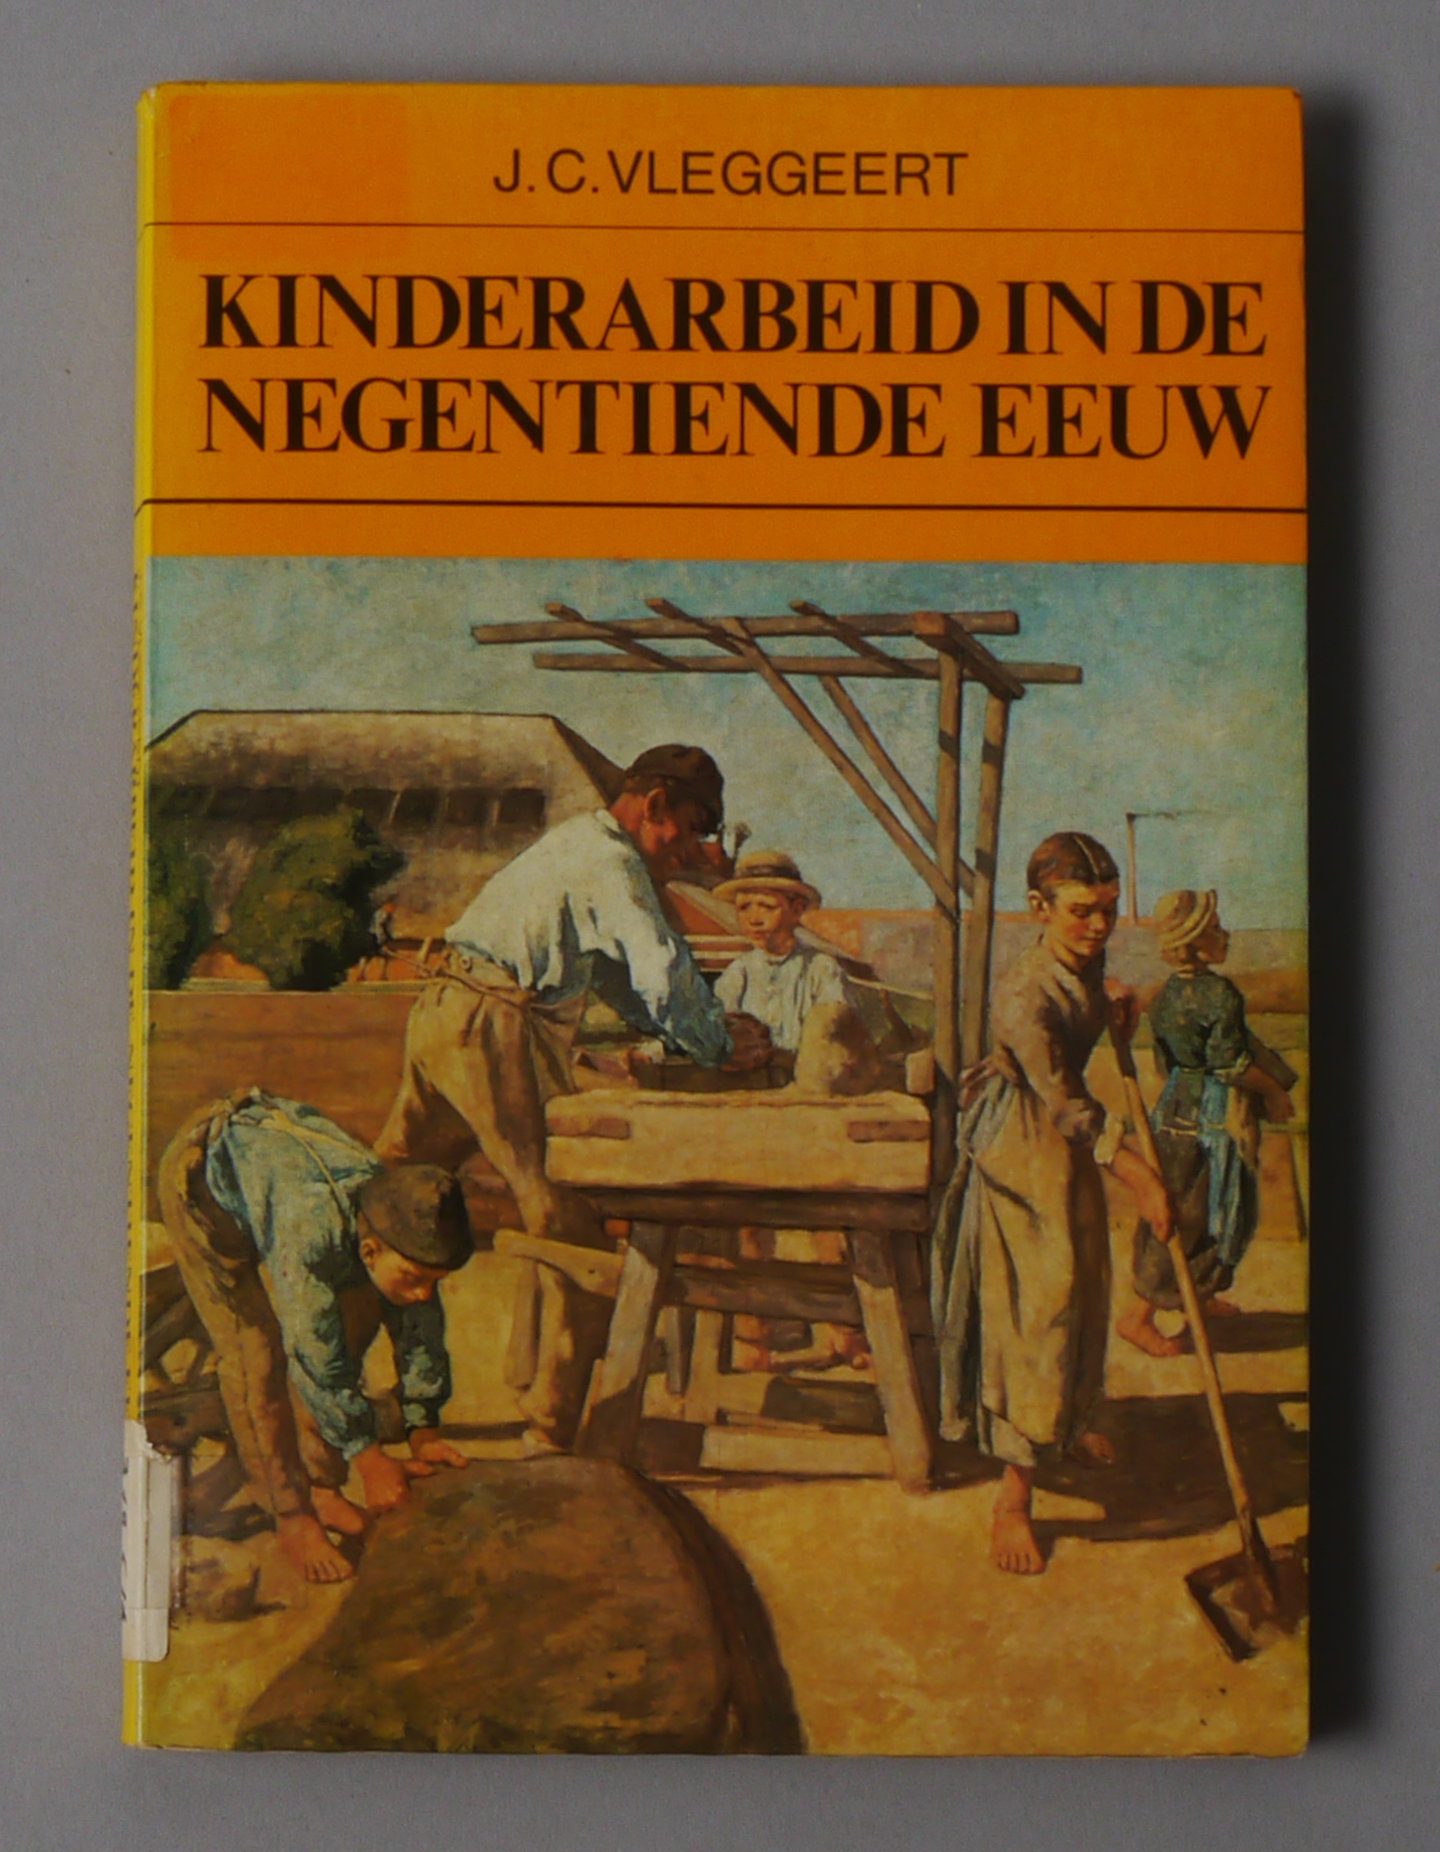 Kinderarbeid In De Negentiende Eeuw.